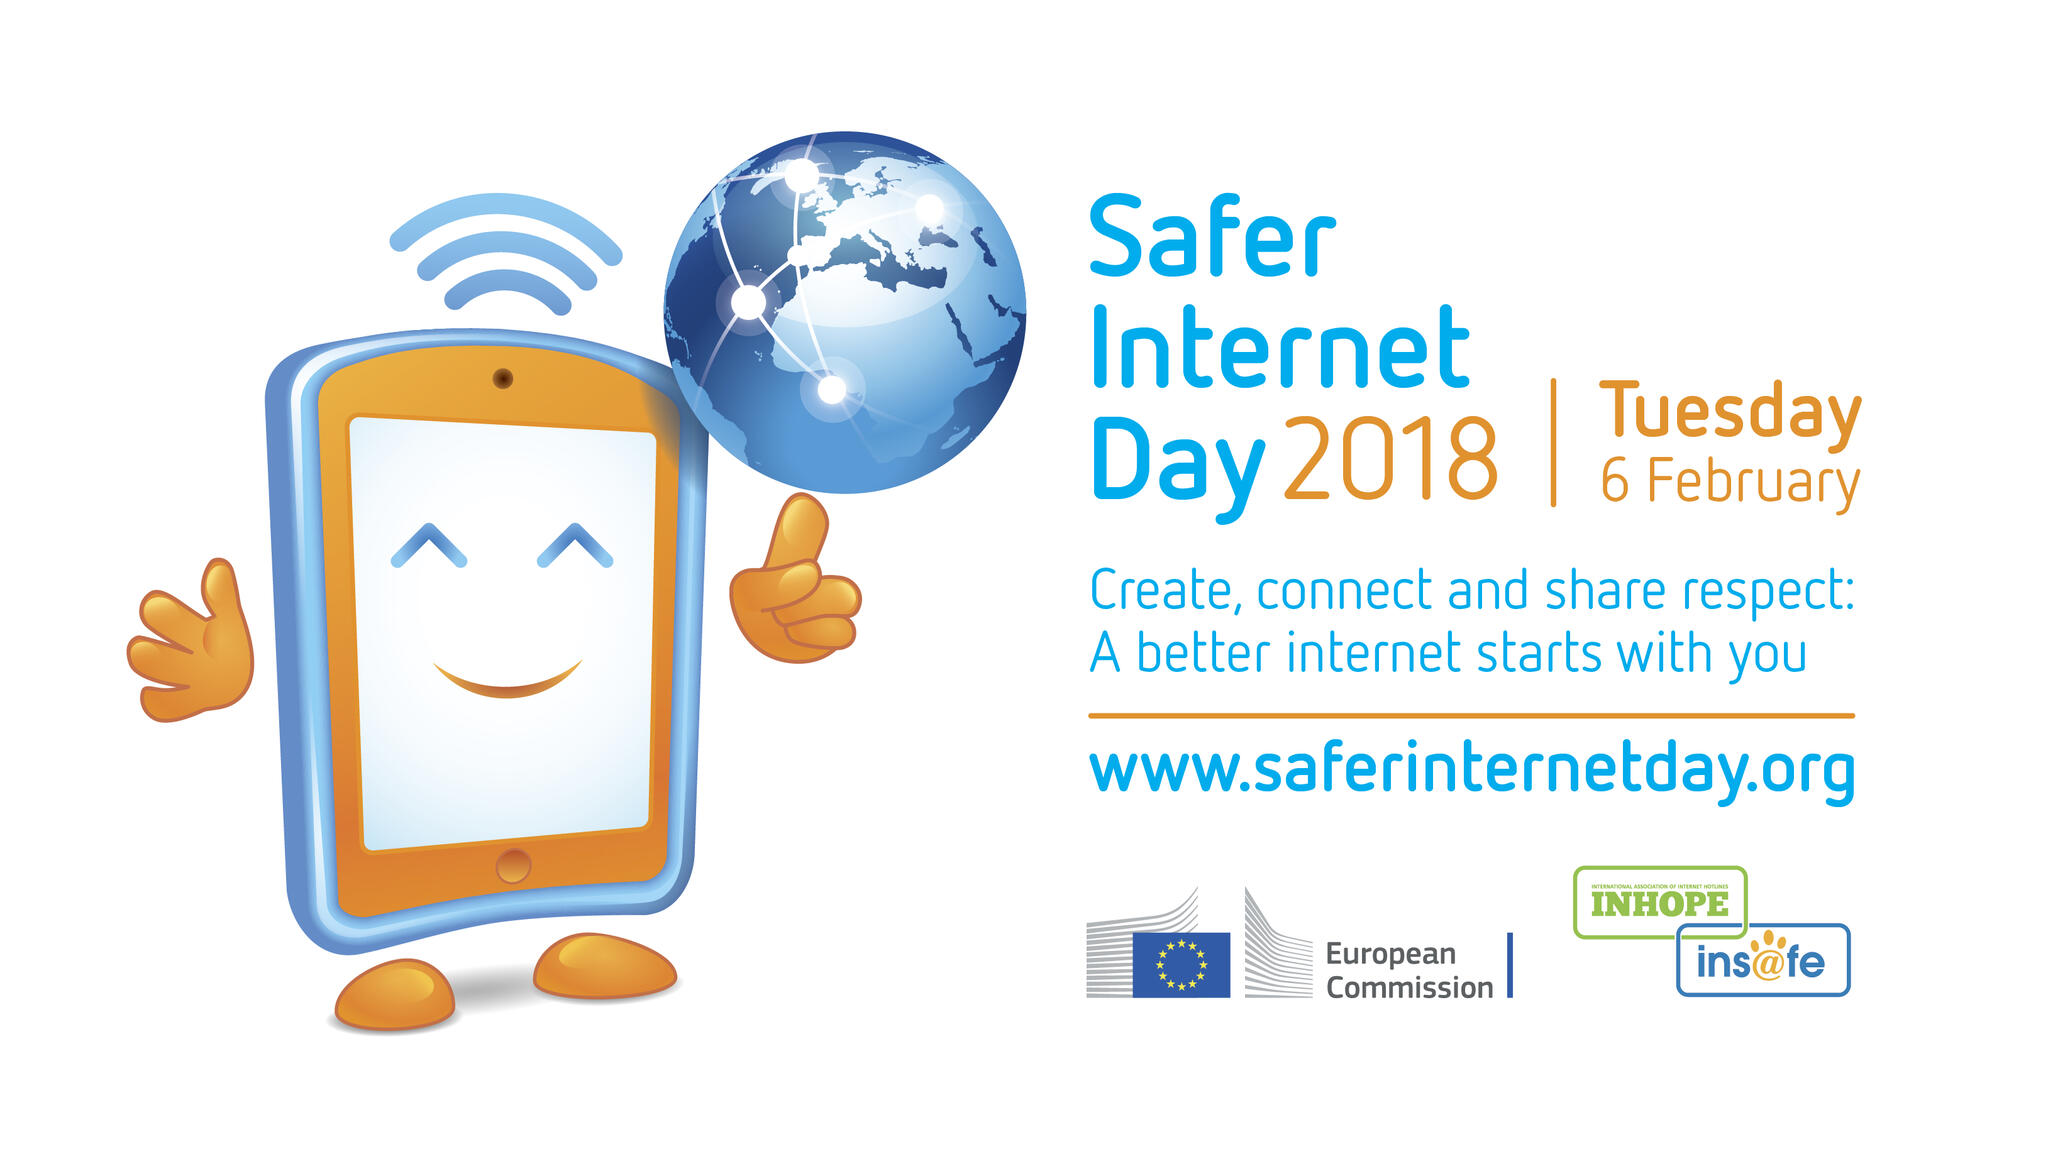 Safer Internet Day 2018 logo